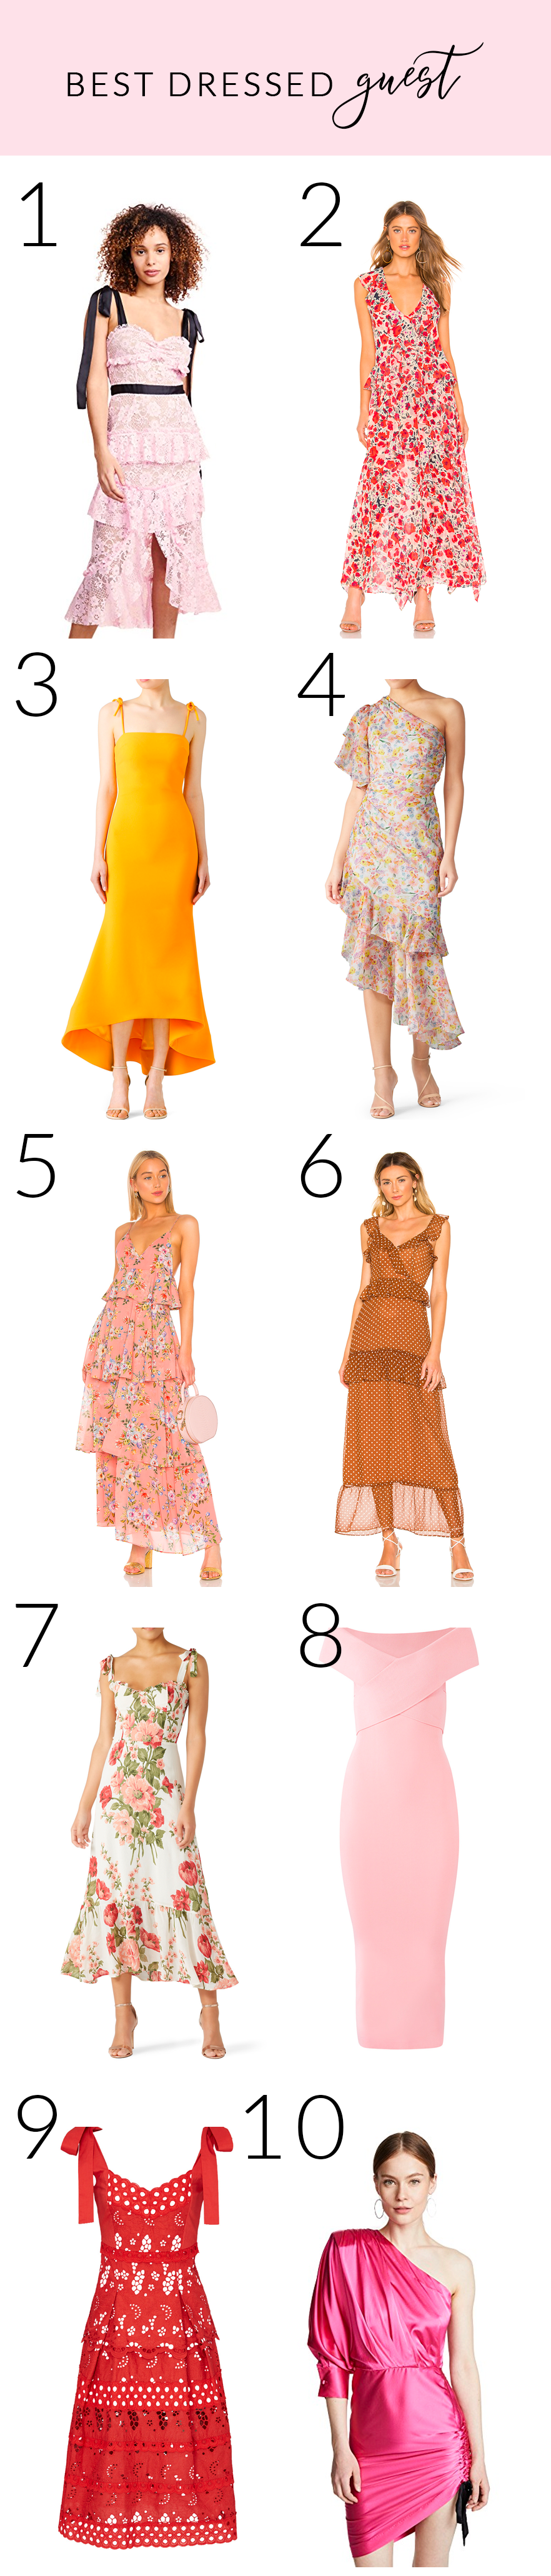 10 dresses - best dressed guest